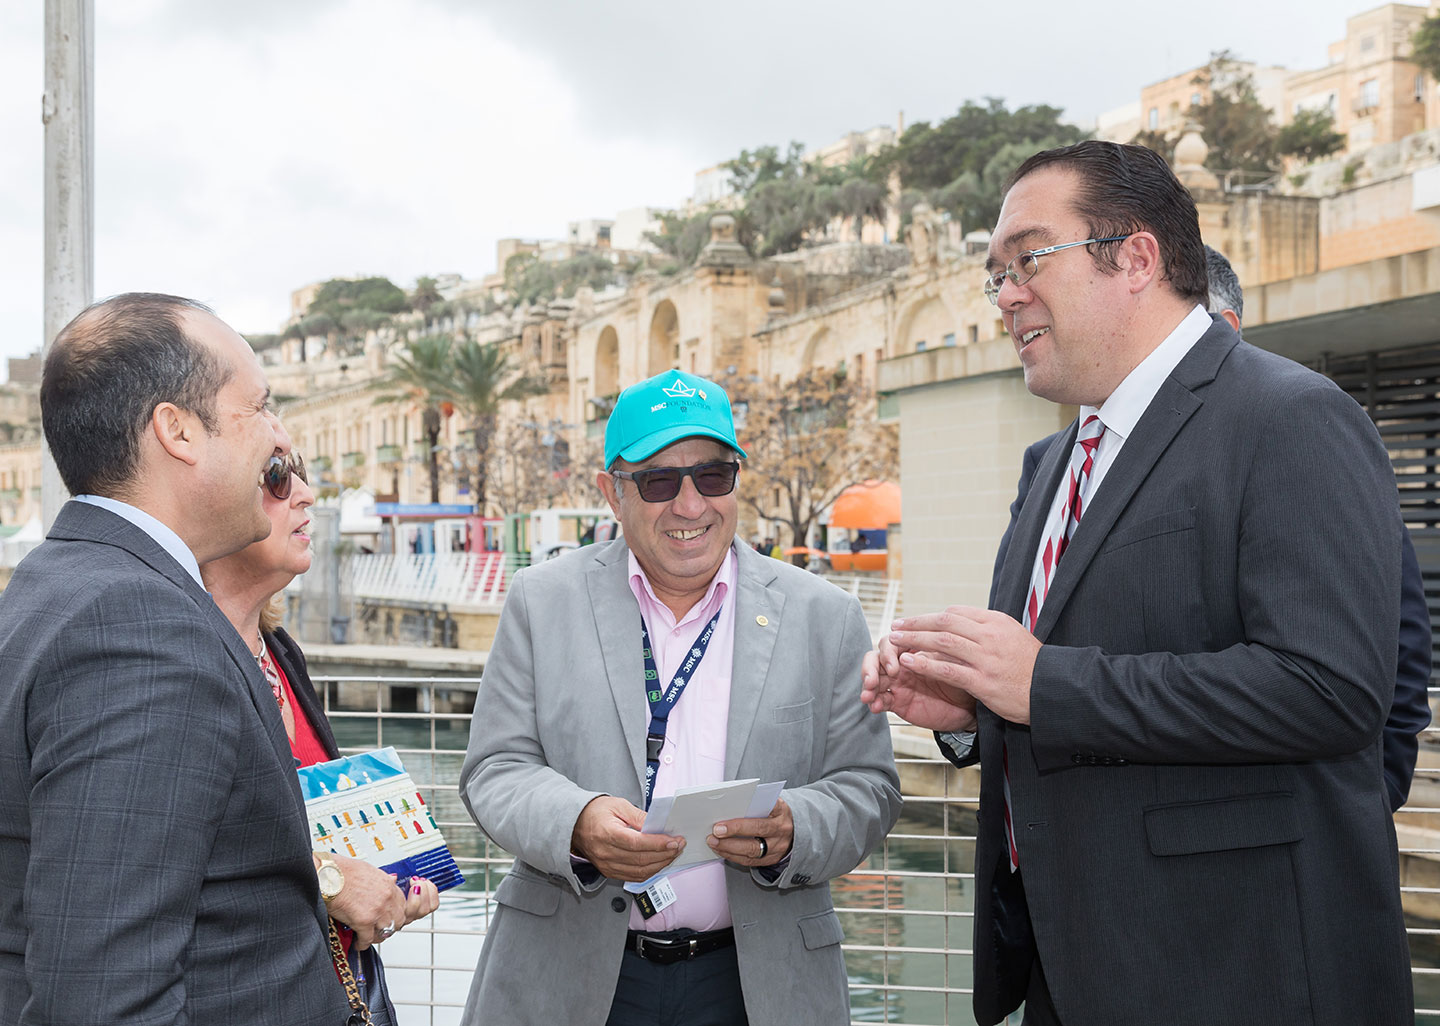 Record 900,000 Cruise Passenger Movements celebrated at Valletta Cruise Port